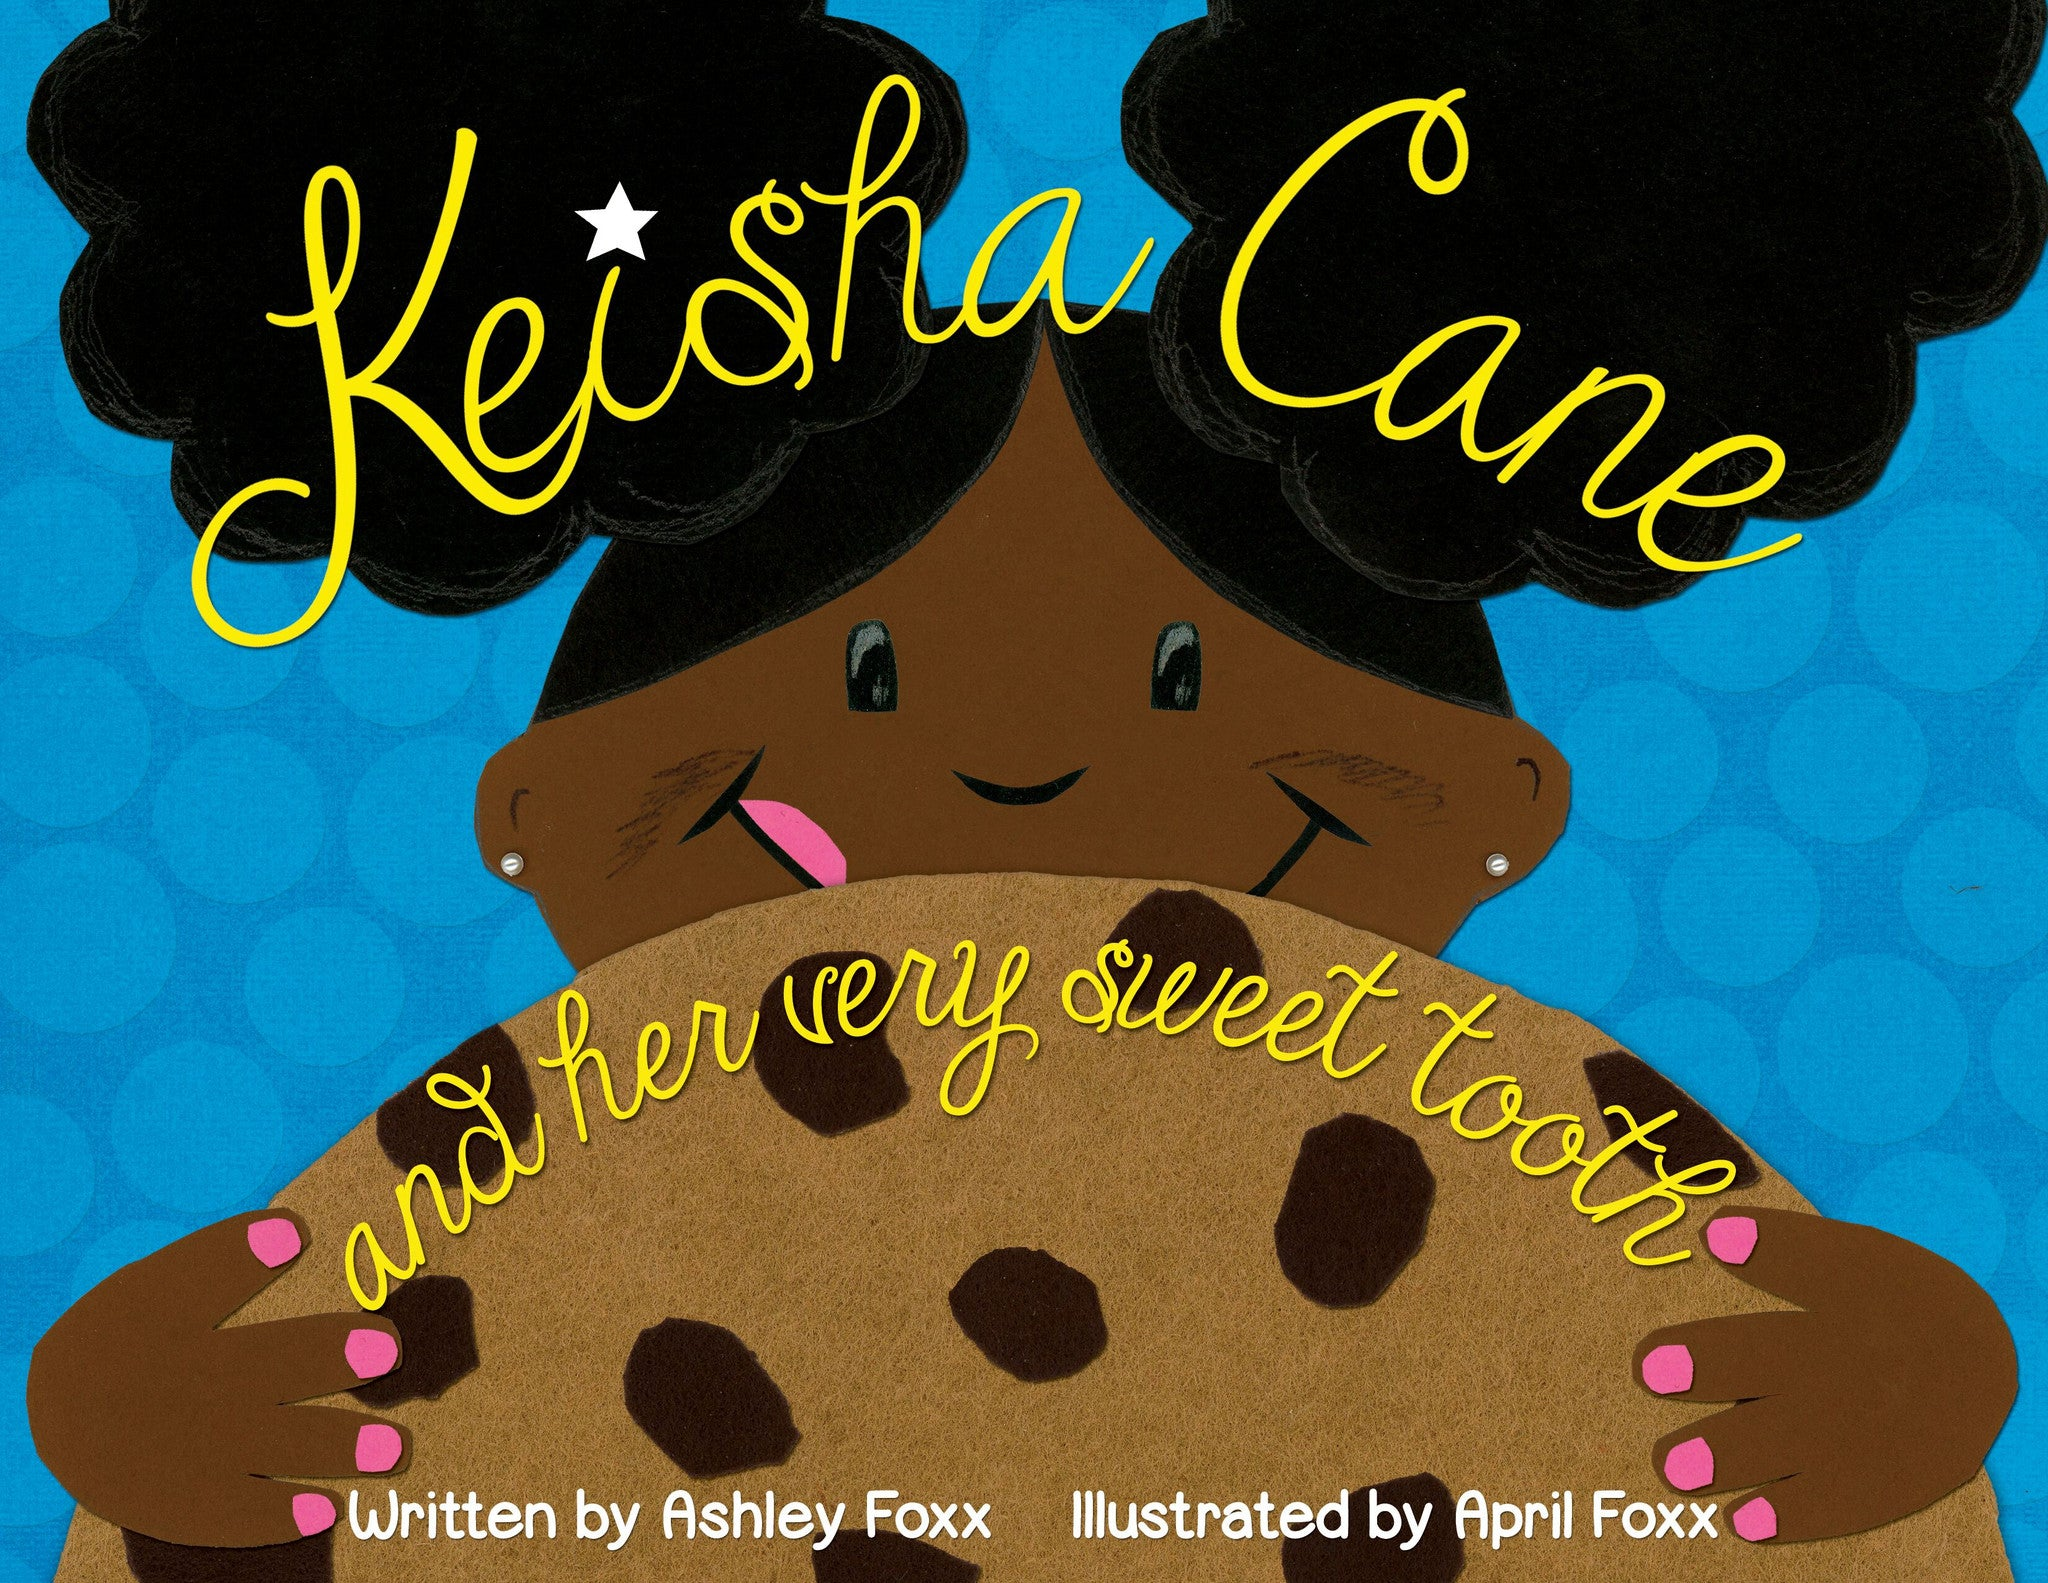 Keisha Cane and Her Very Sweet Tooth - Hardback (Book only)